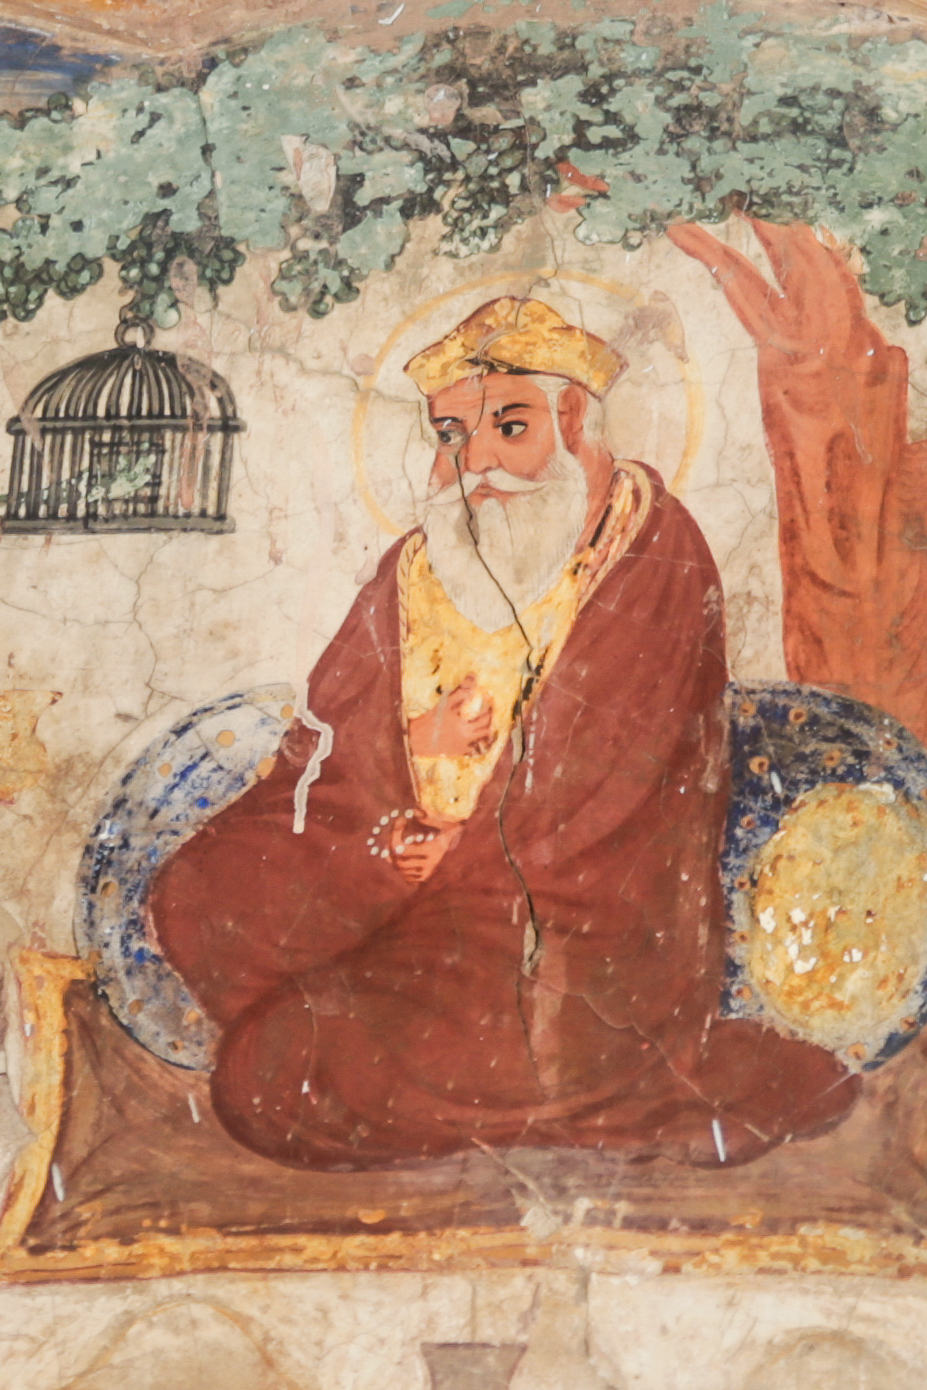 Mural_painting_of_Guru_Nanak_from_Gurdwara_Baba_Atal_Rai.jpg